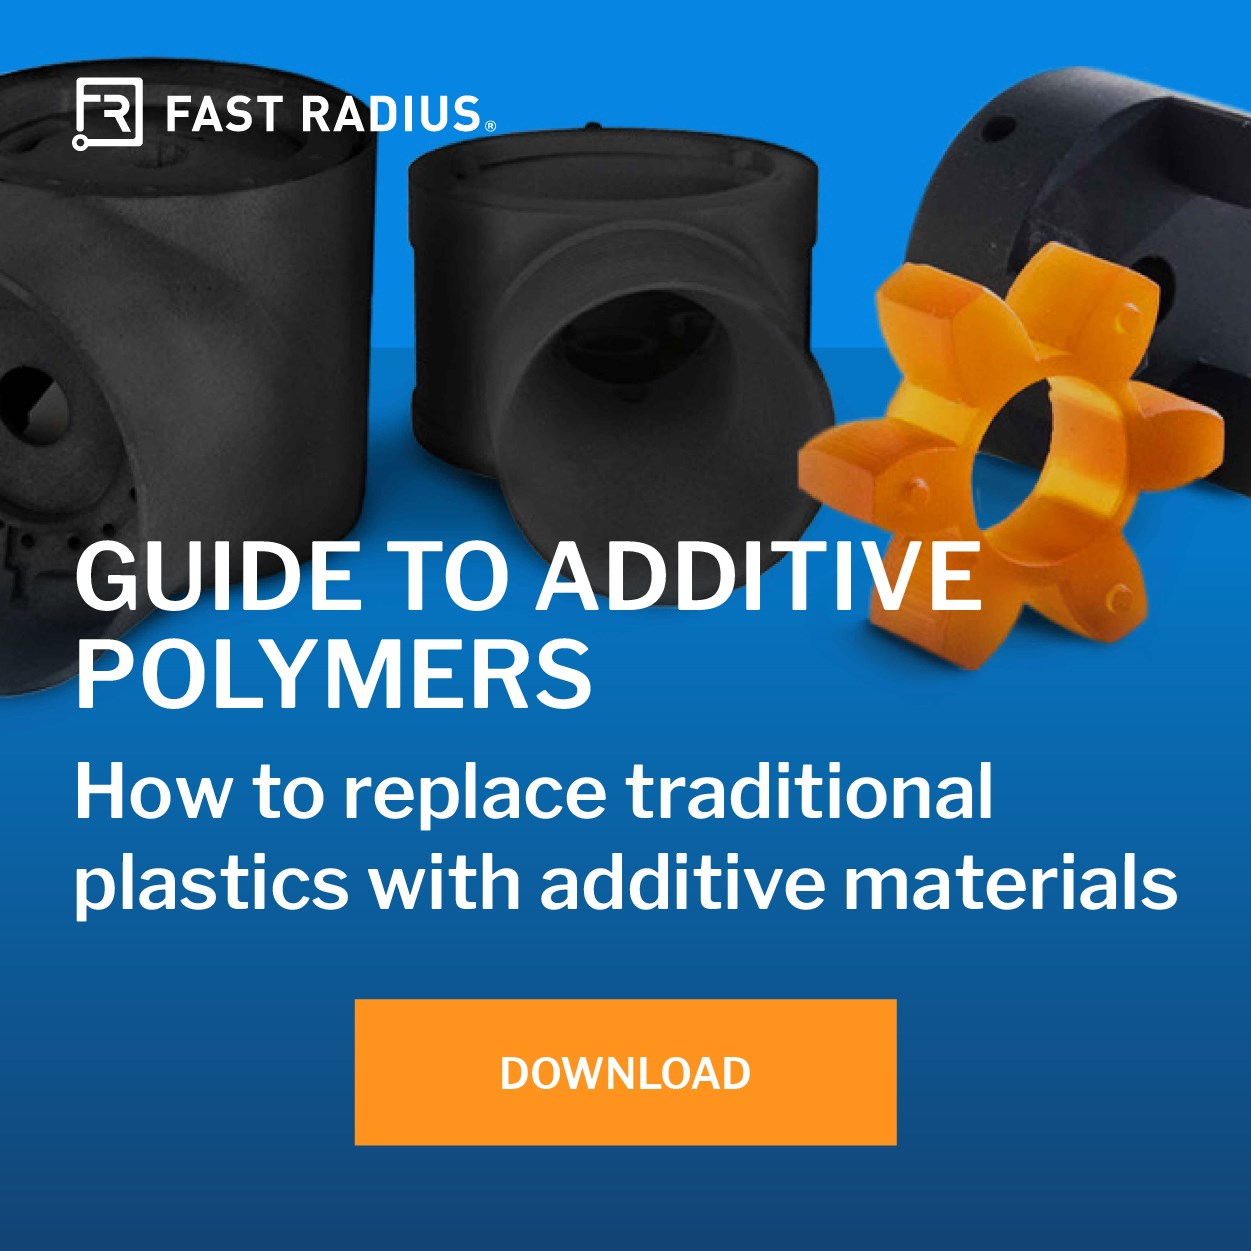 Download the Fast Radius Guide to Additive Polymers